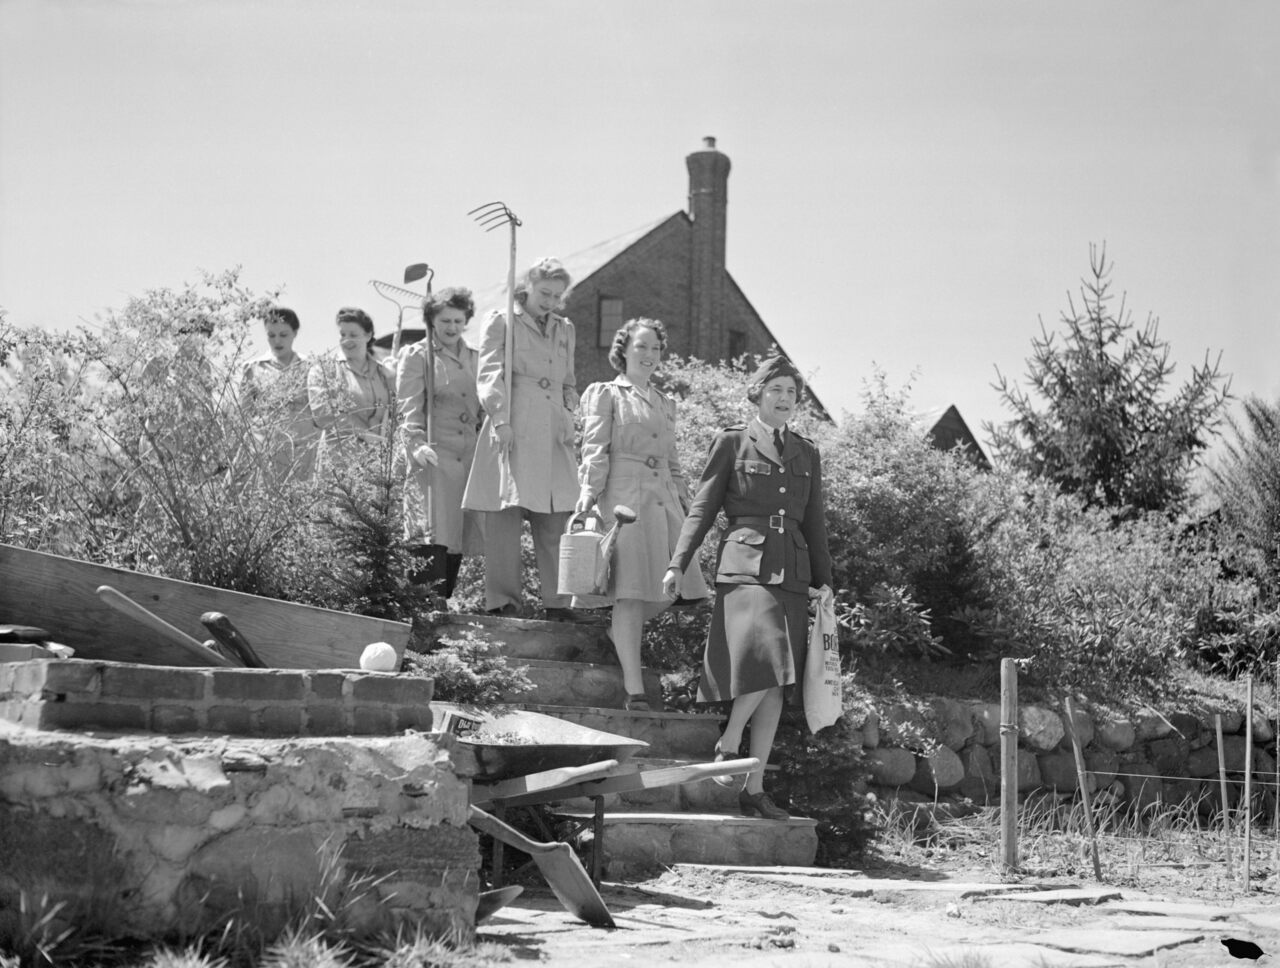 Members of a women's volunteer service in Flushing march into their Victory Garden.